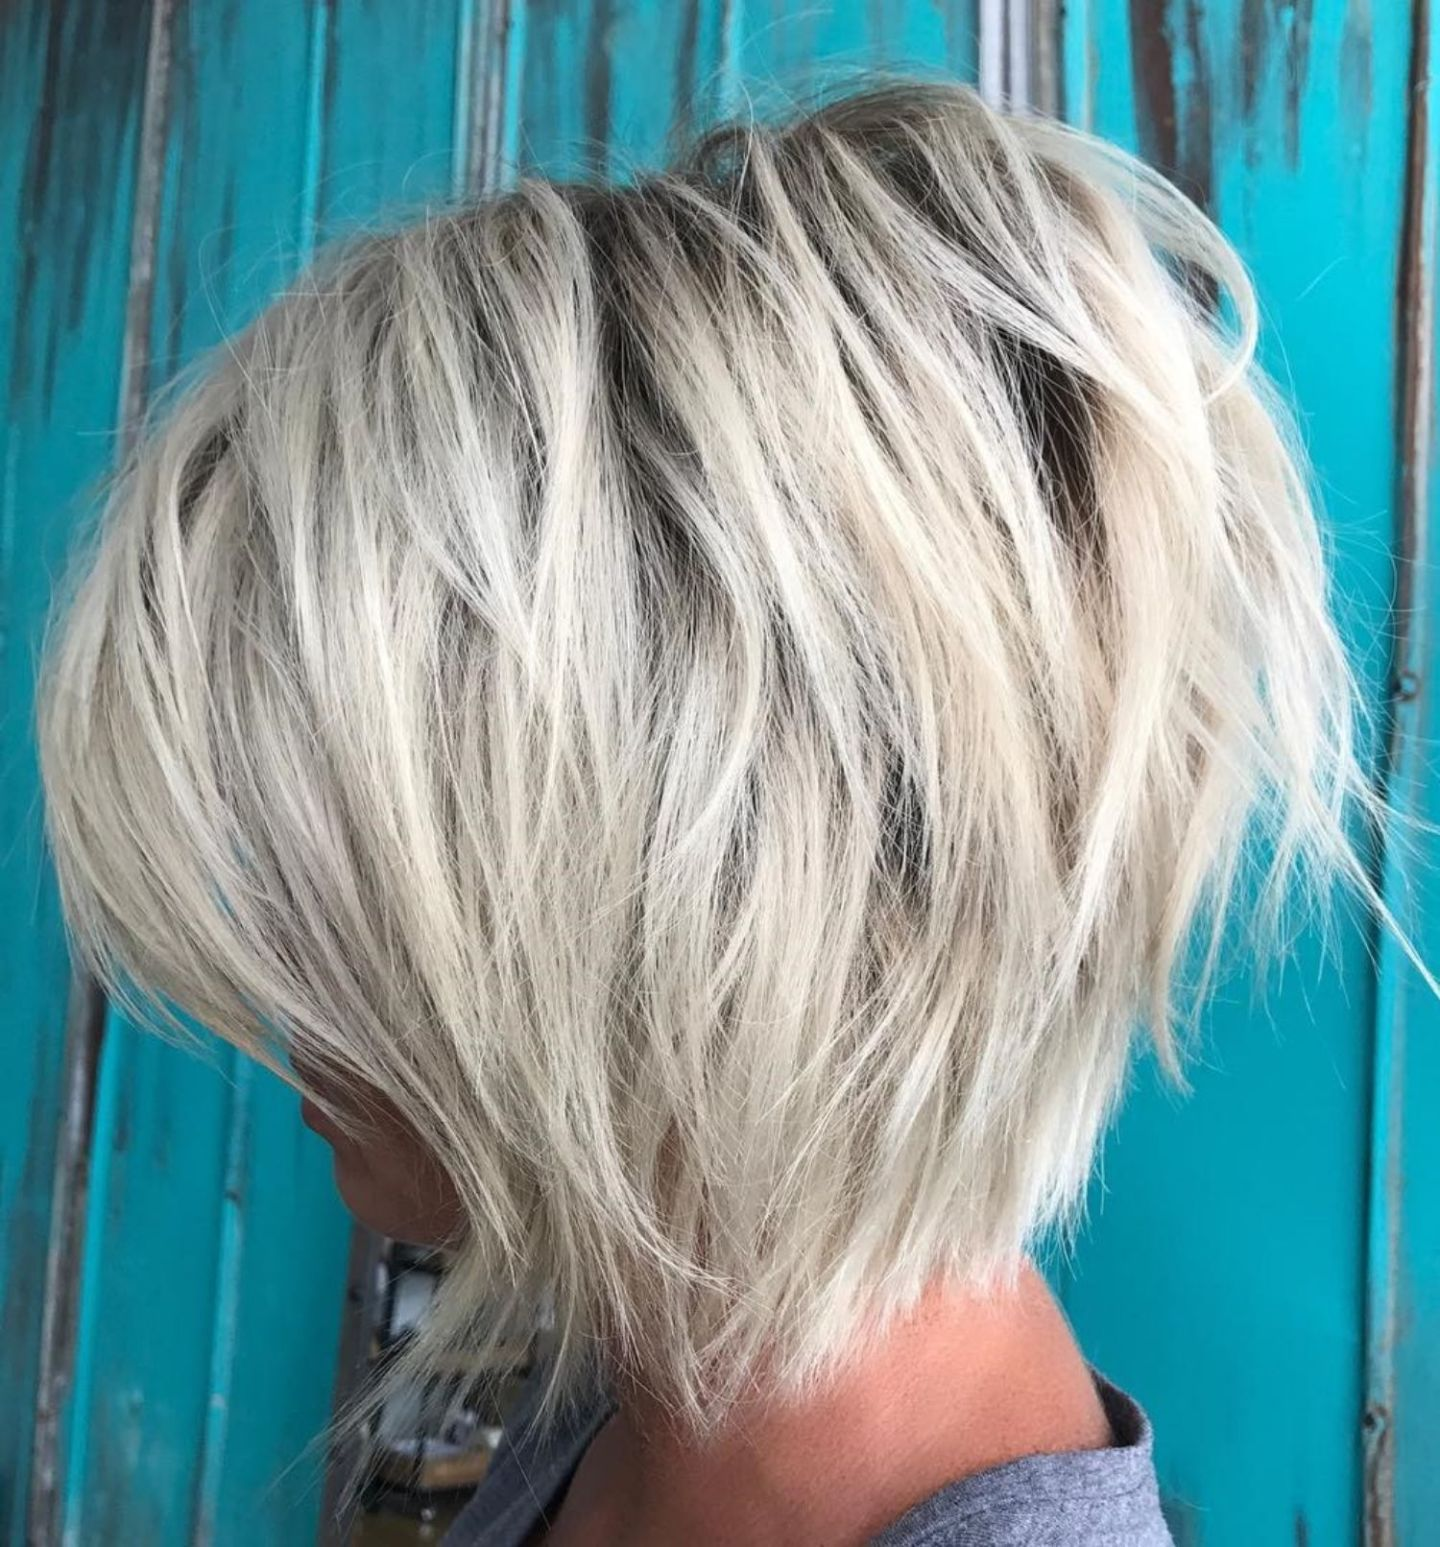 most beneficial haircuts for thick hair of any length in i